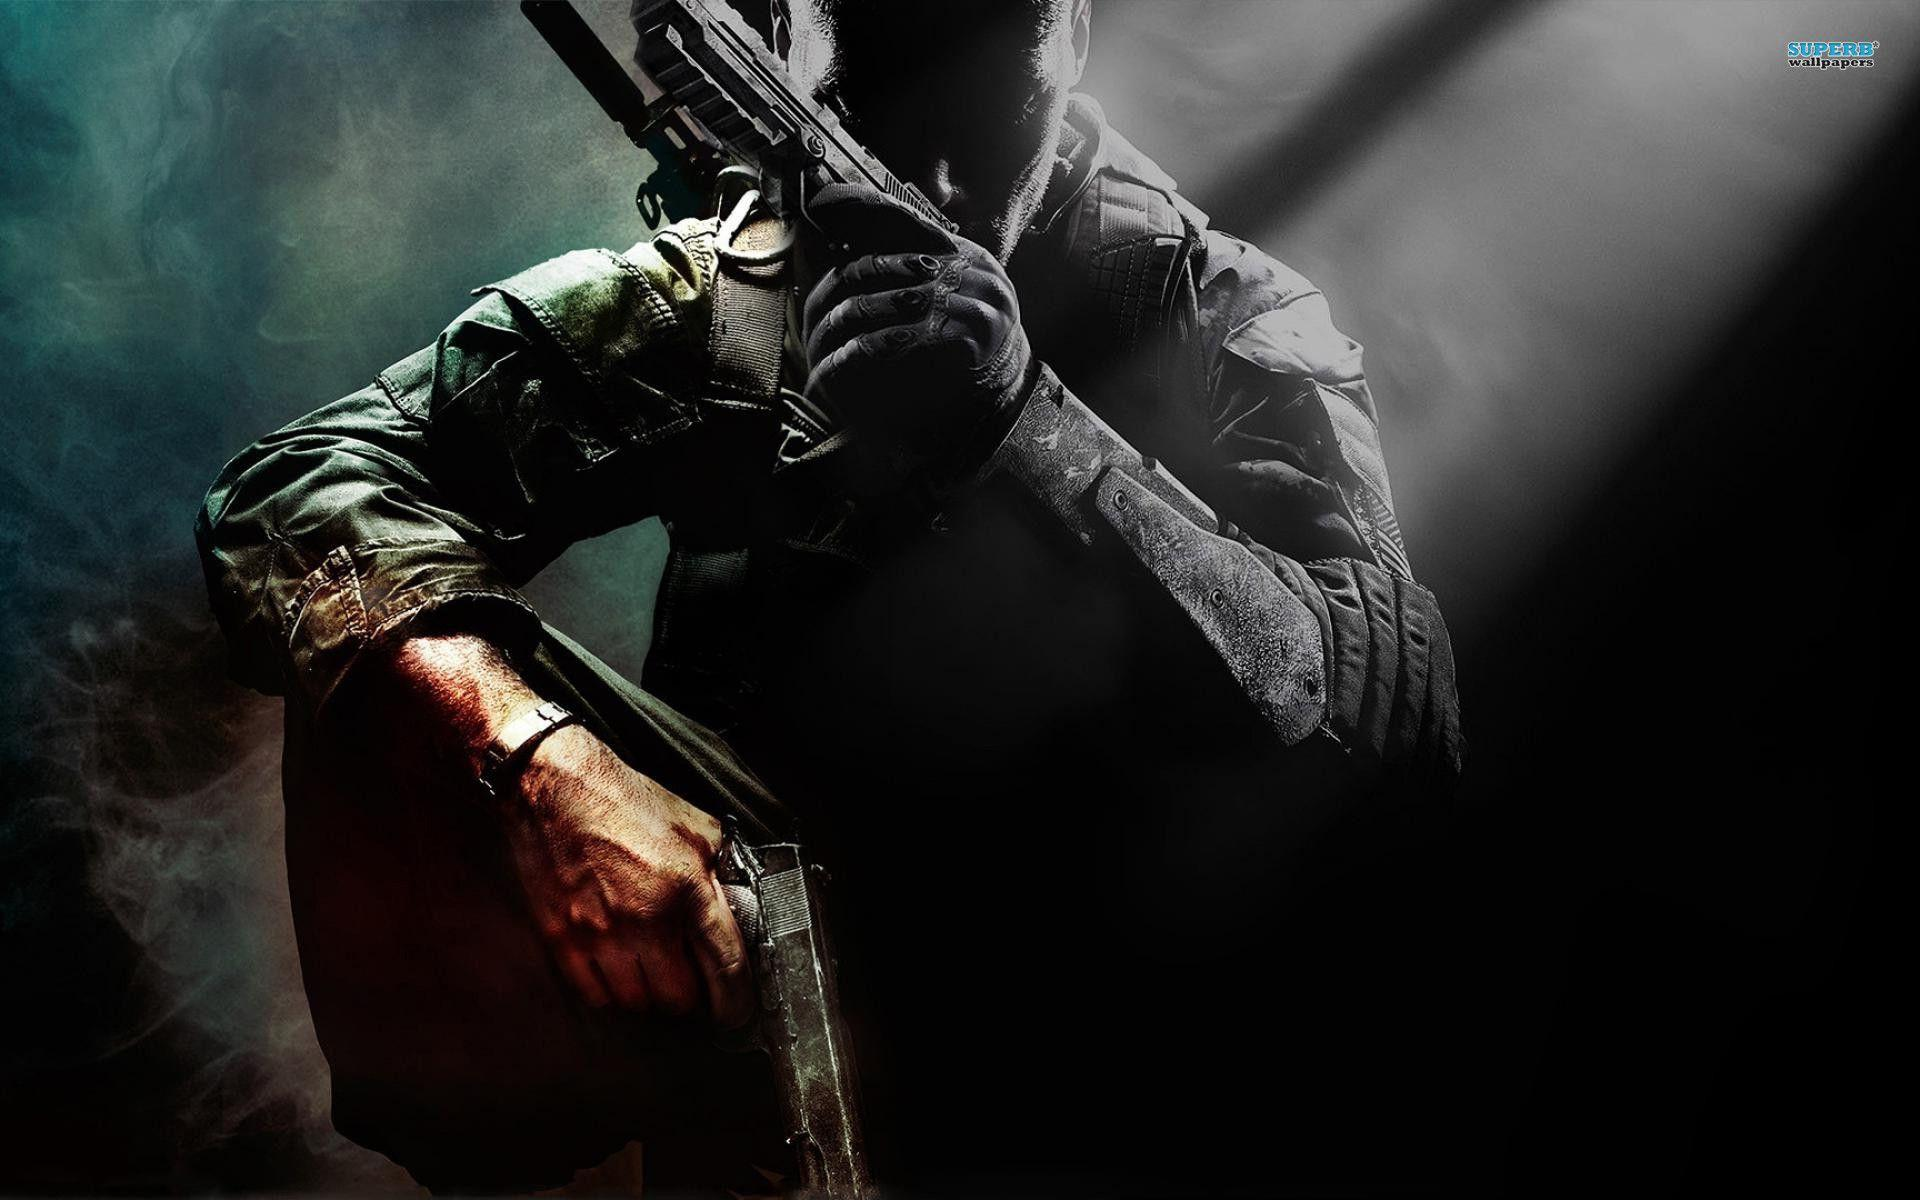 Call Of Duty: Black Ops Backgrounds